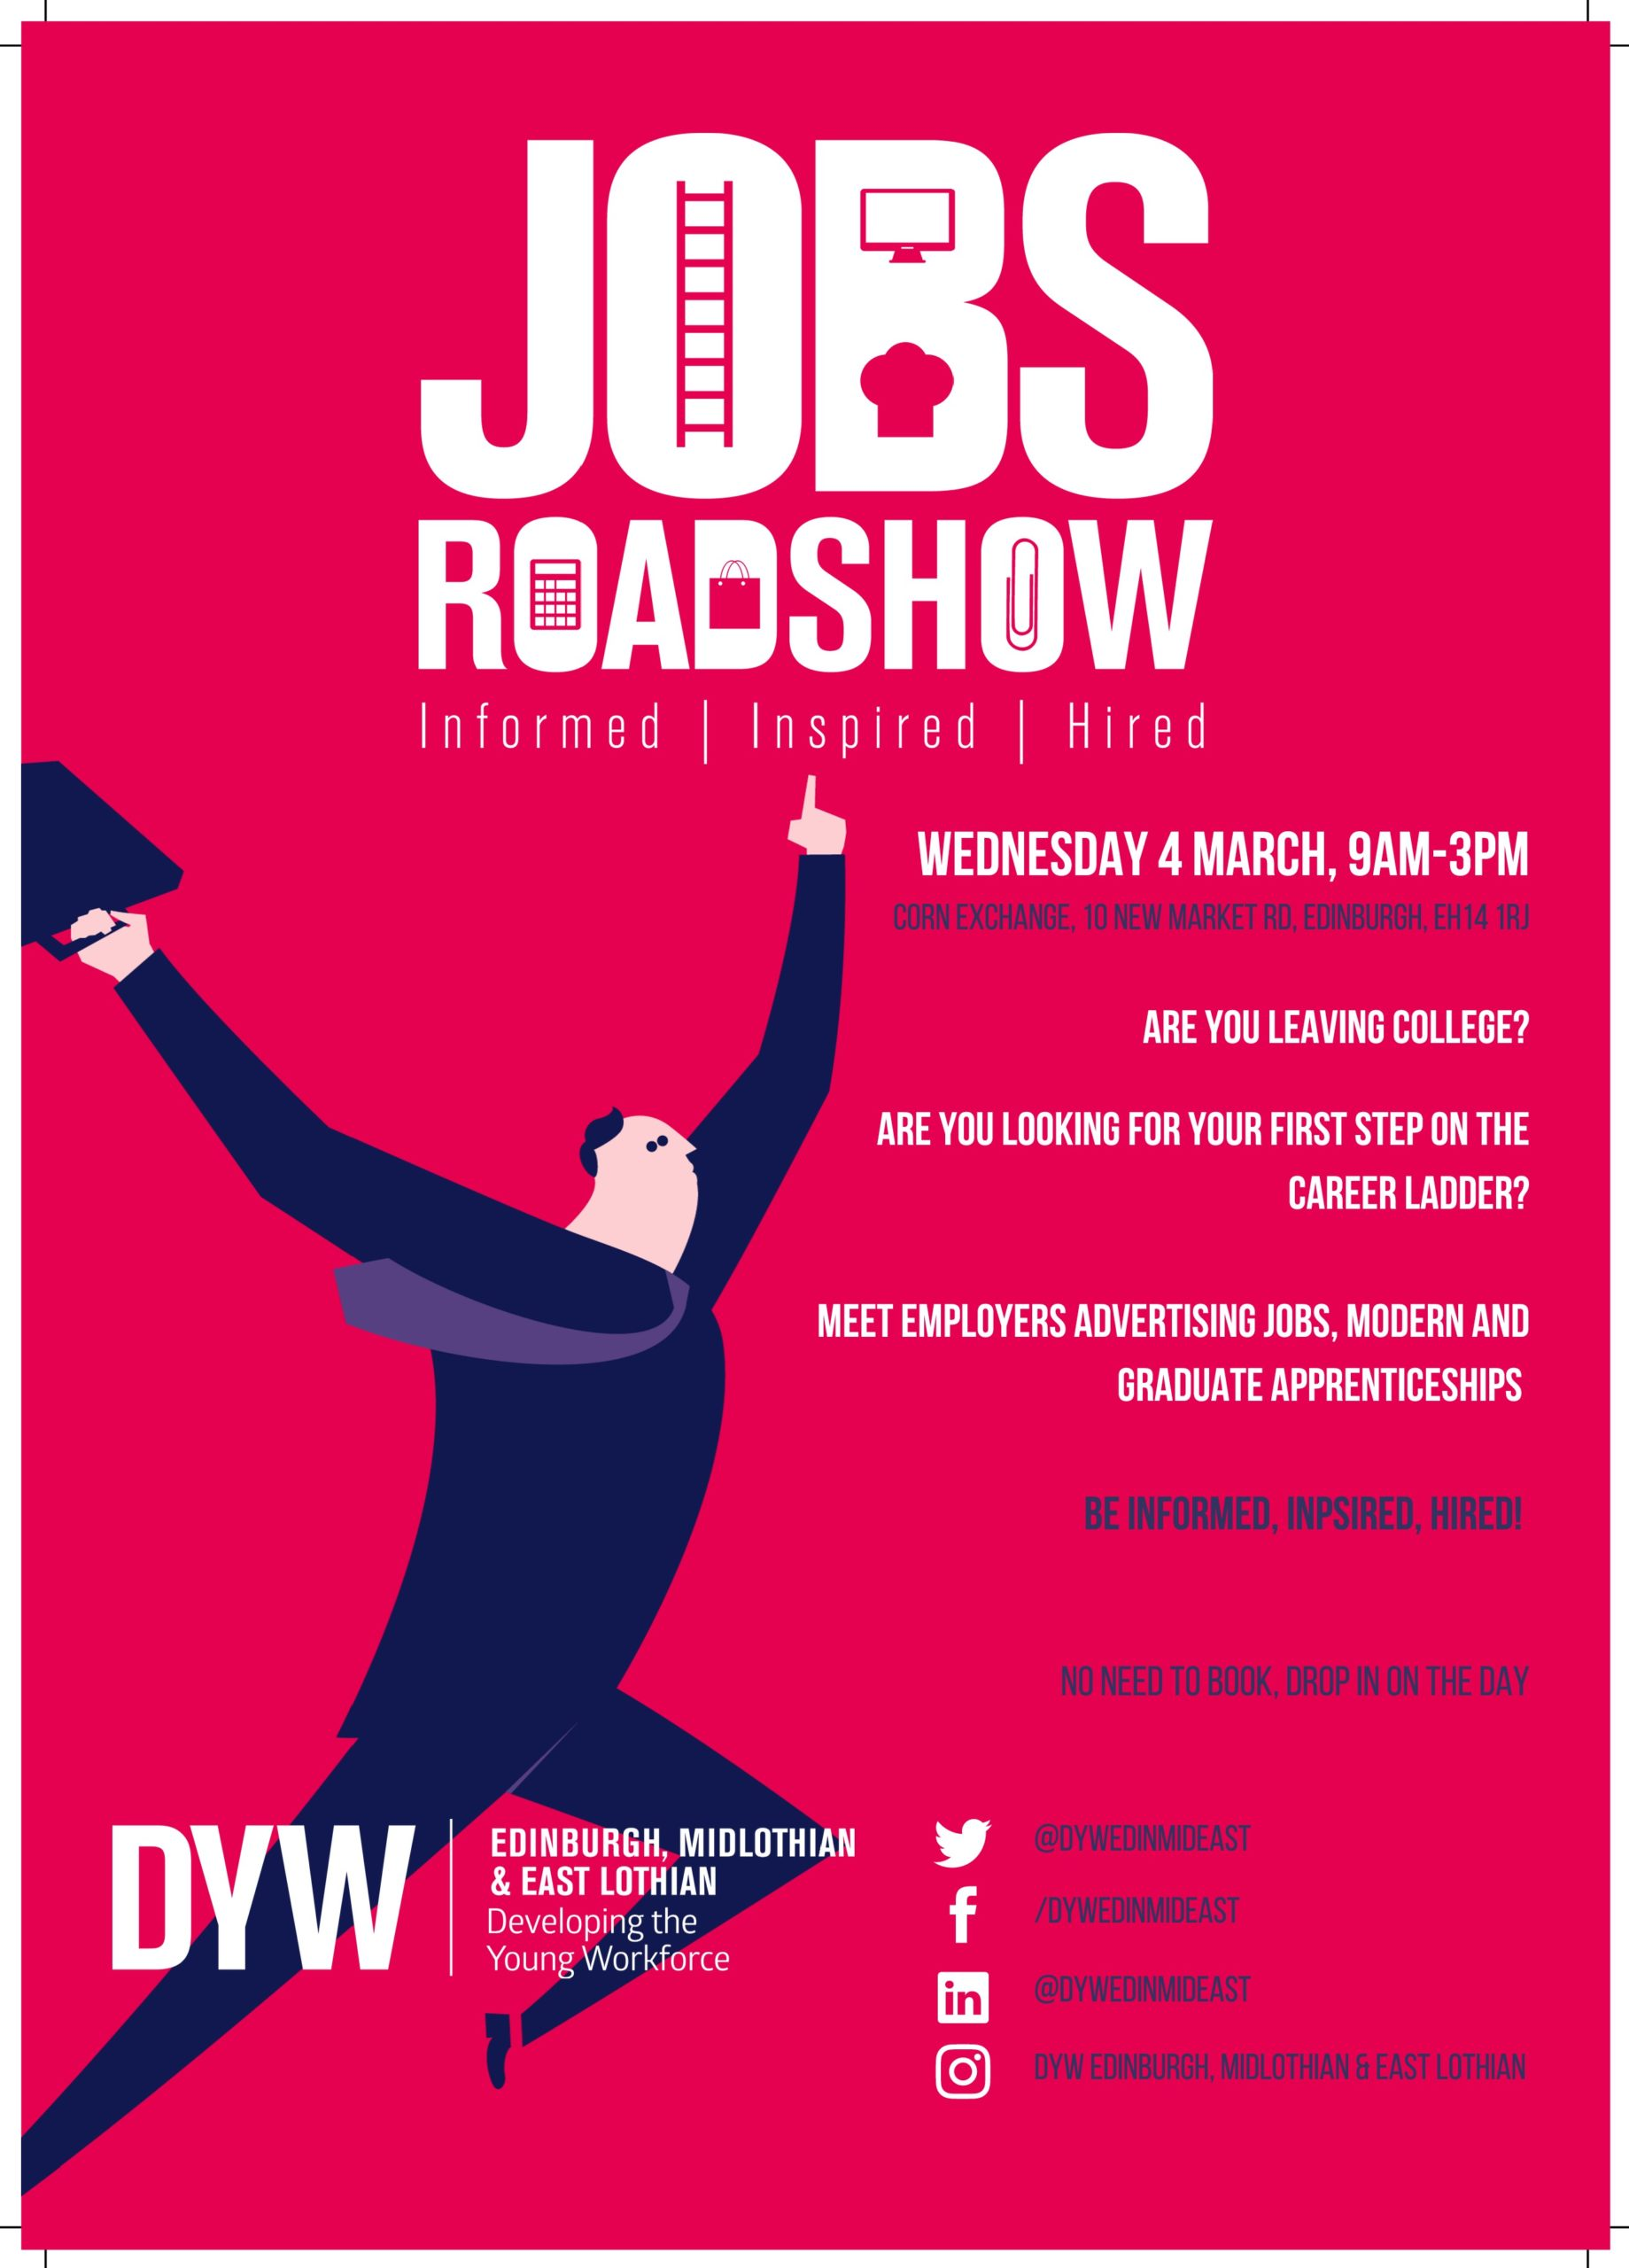 Jobs Roadshow Poster College A4 PRINT-jpg